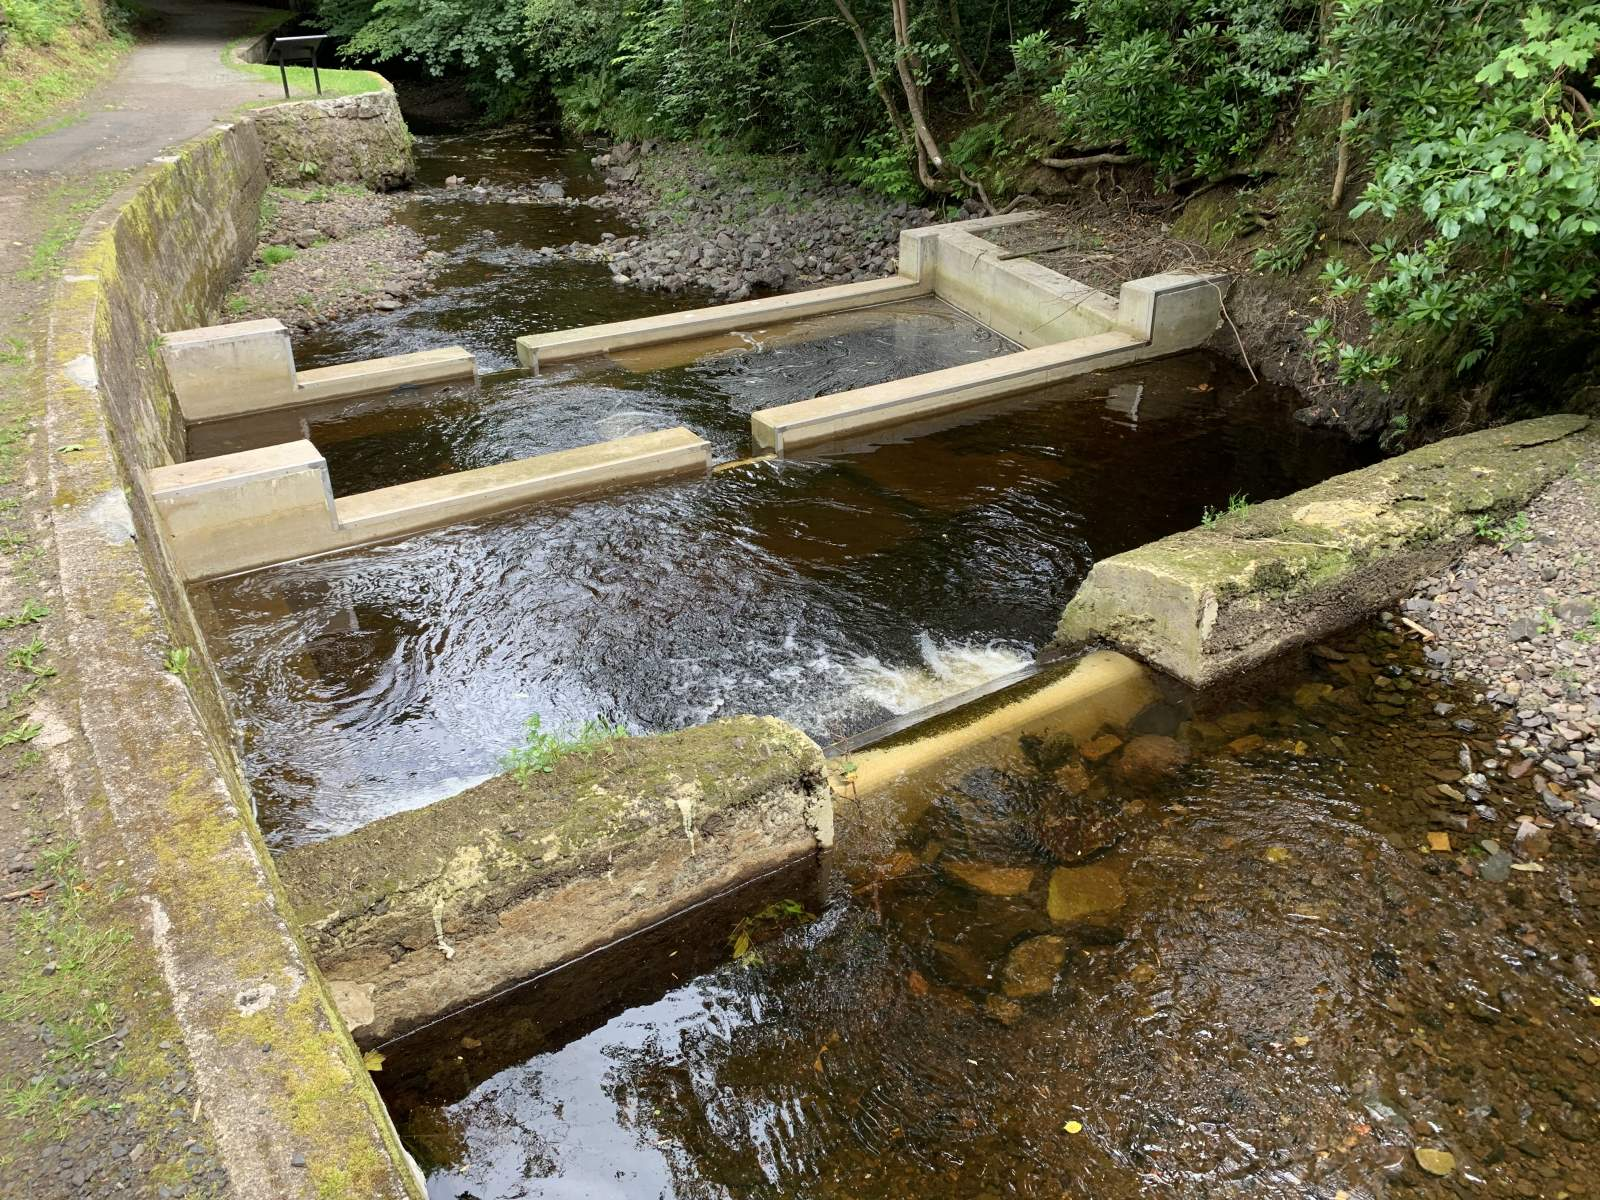 The water weir project at Gotter, Scotland